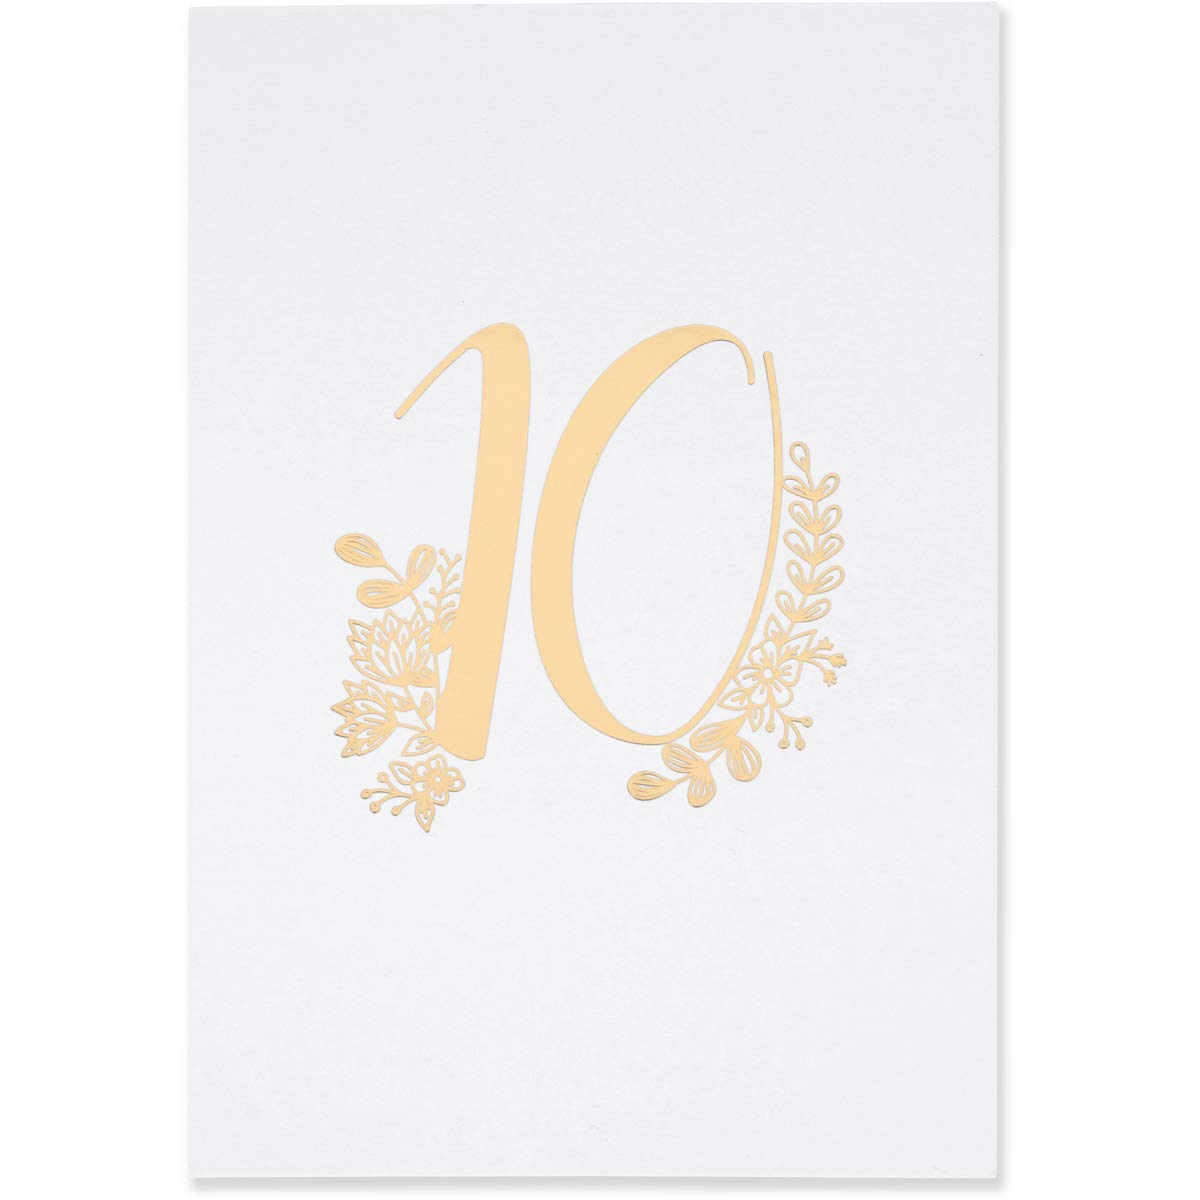 Sweetzer & Orange Gold Table Numbers for Wedding 1 to 40 Elegant Table Number Cards for Weddings, Bar Mitzvah, Quinceanera Decorations, Restaurant and More! Premium Paper Table Numbers